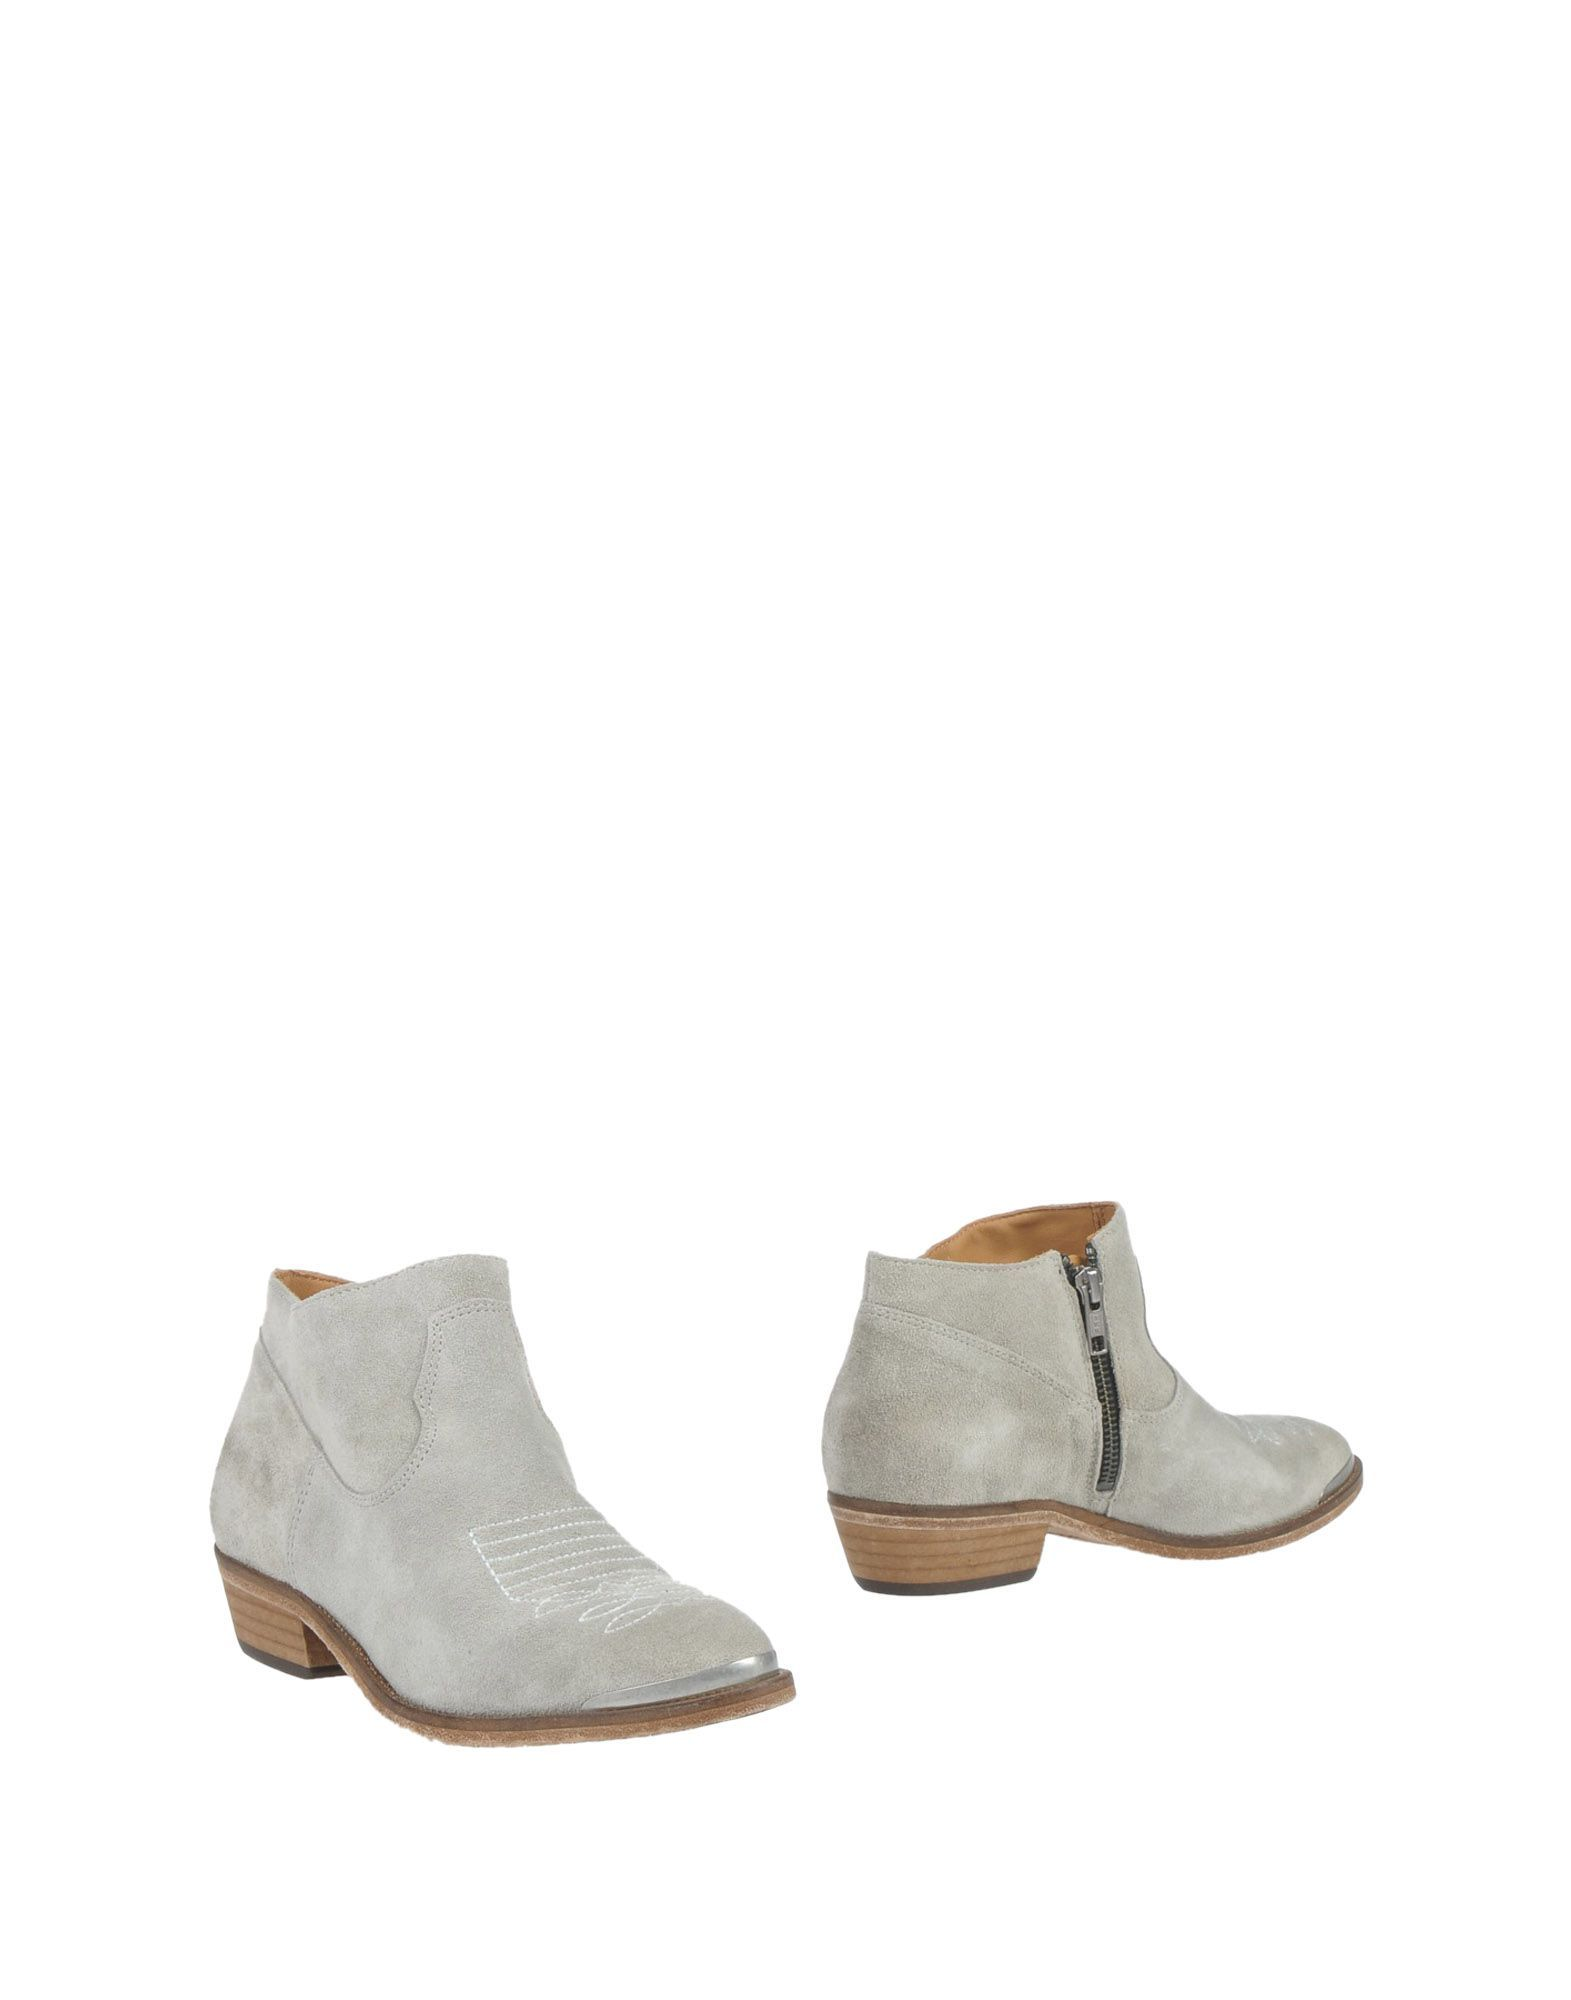 catarina martins ankle boots